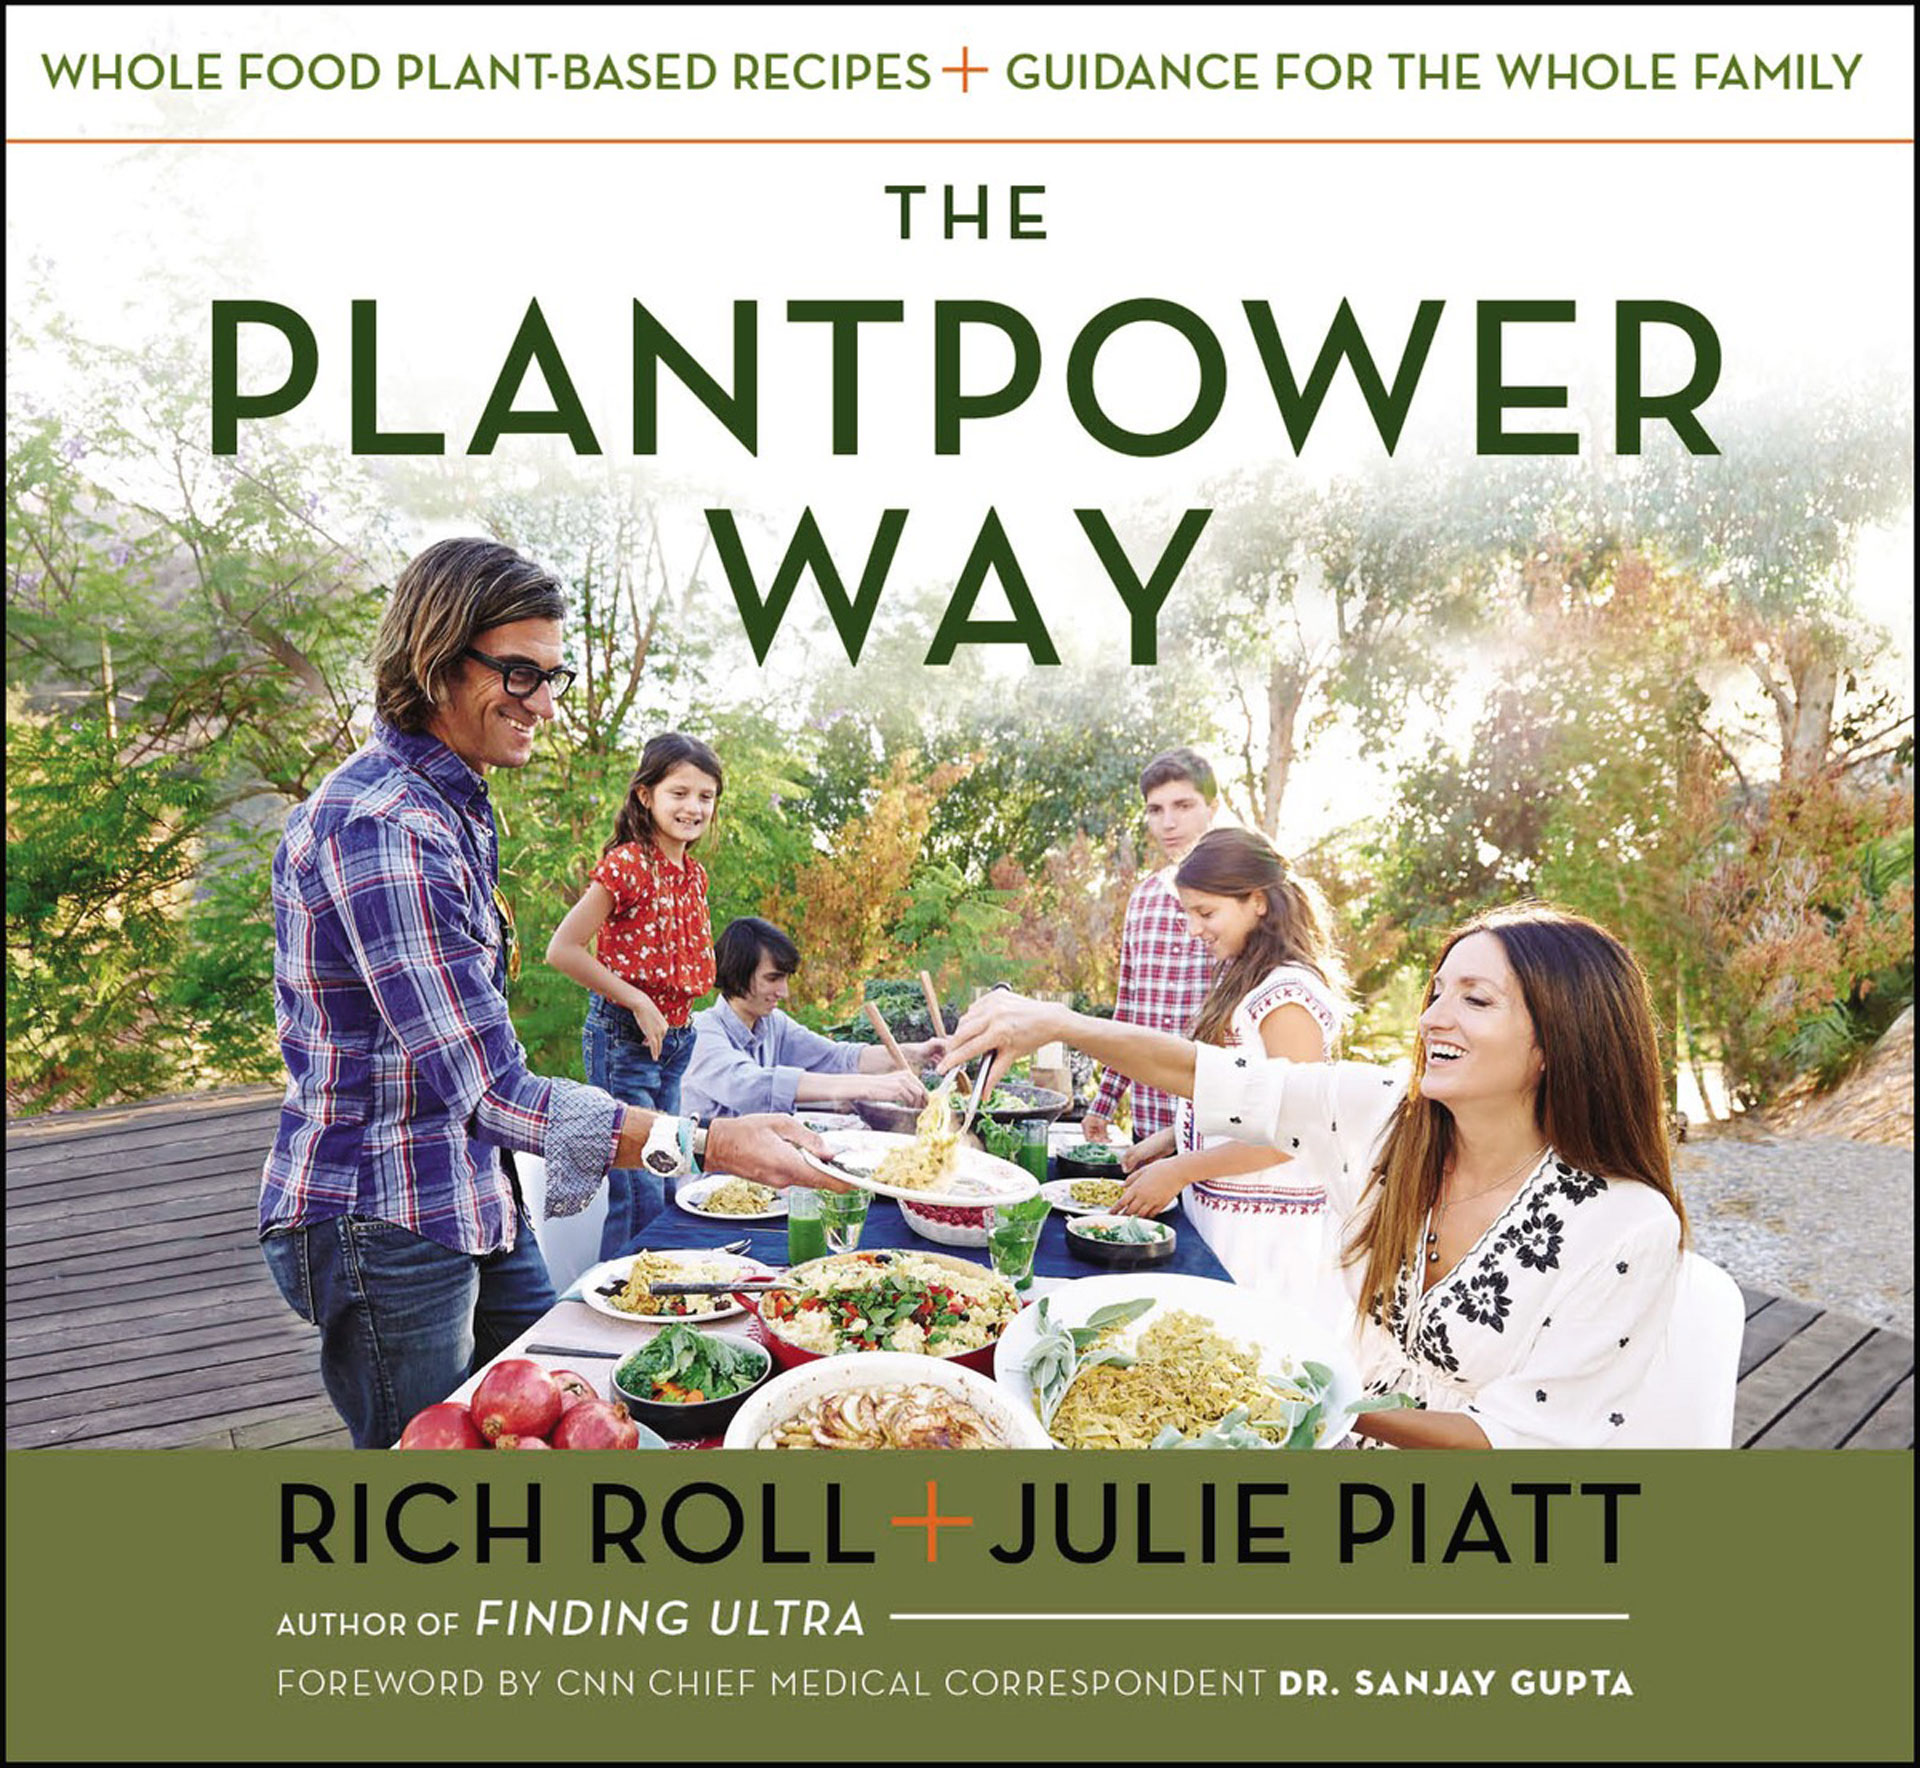 The Plantpower Way by Rich Roll and Julie Piatt